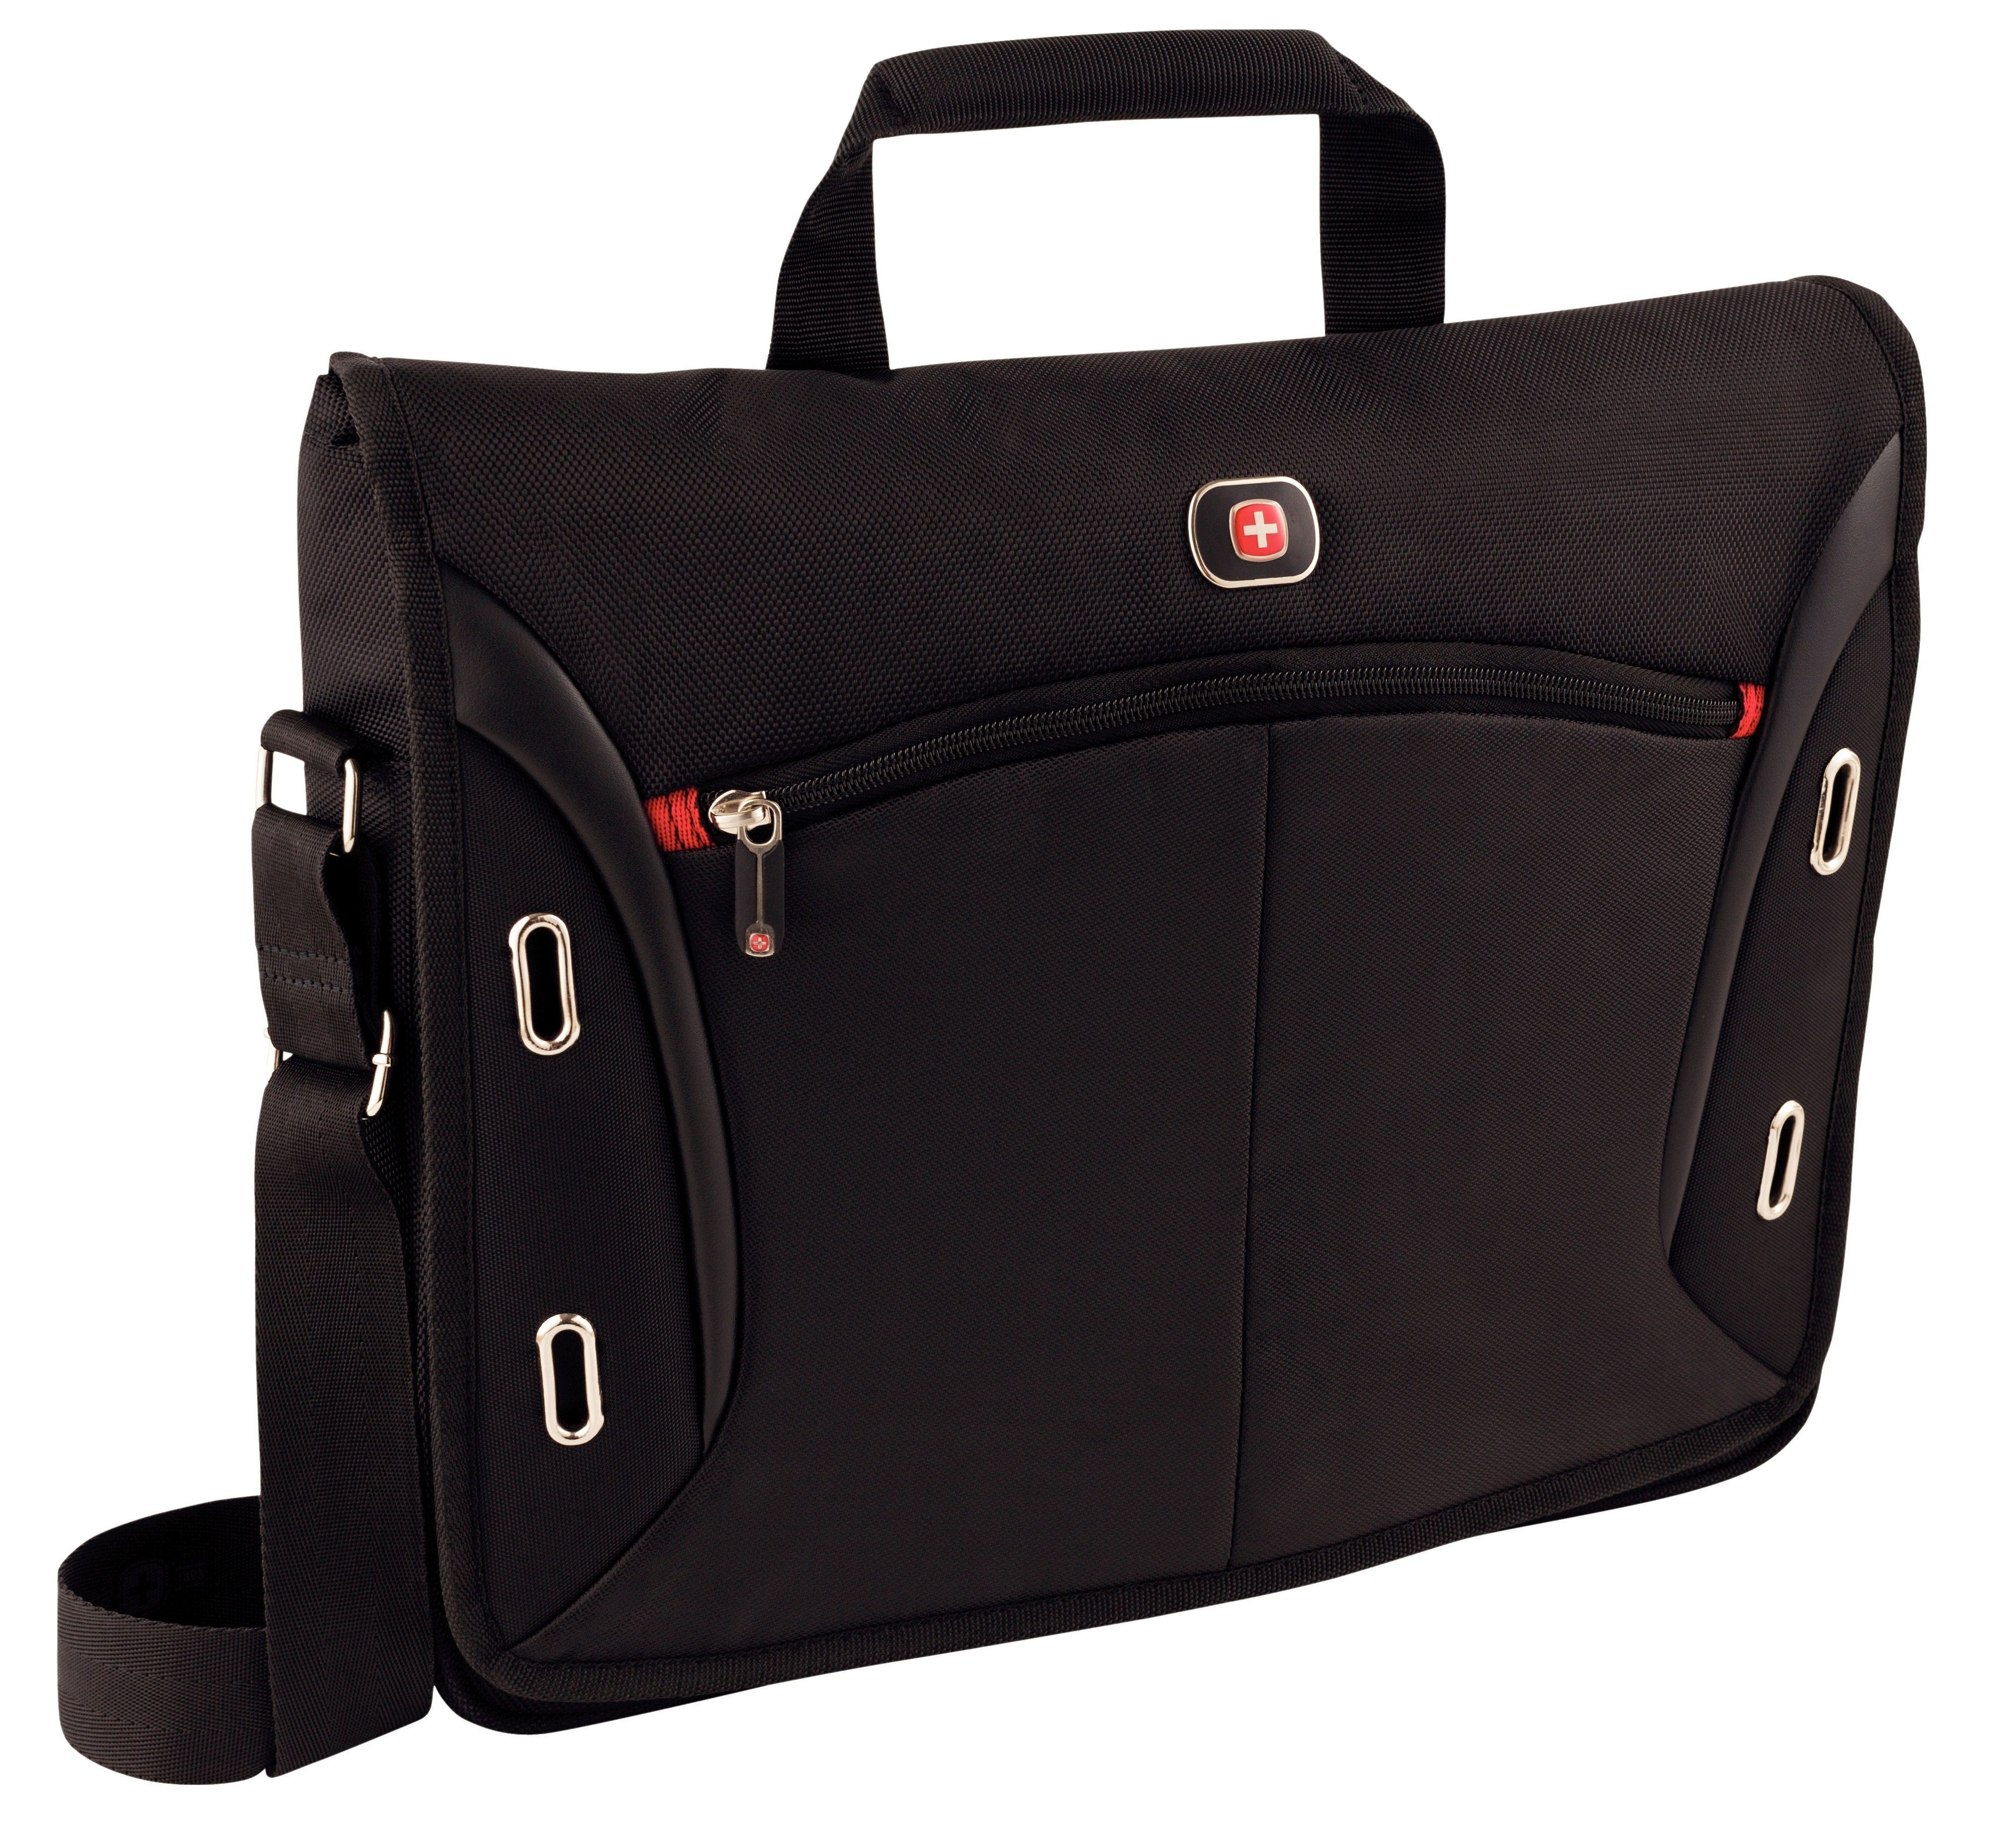 "WENGER brašna na notebook Wenger Developer 15 Messenger Bag 15.6"" Black / 67684001"